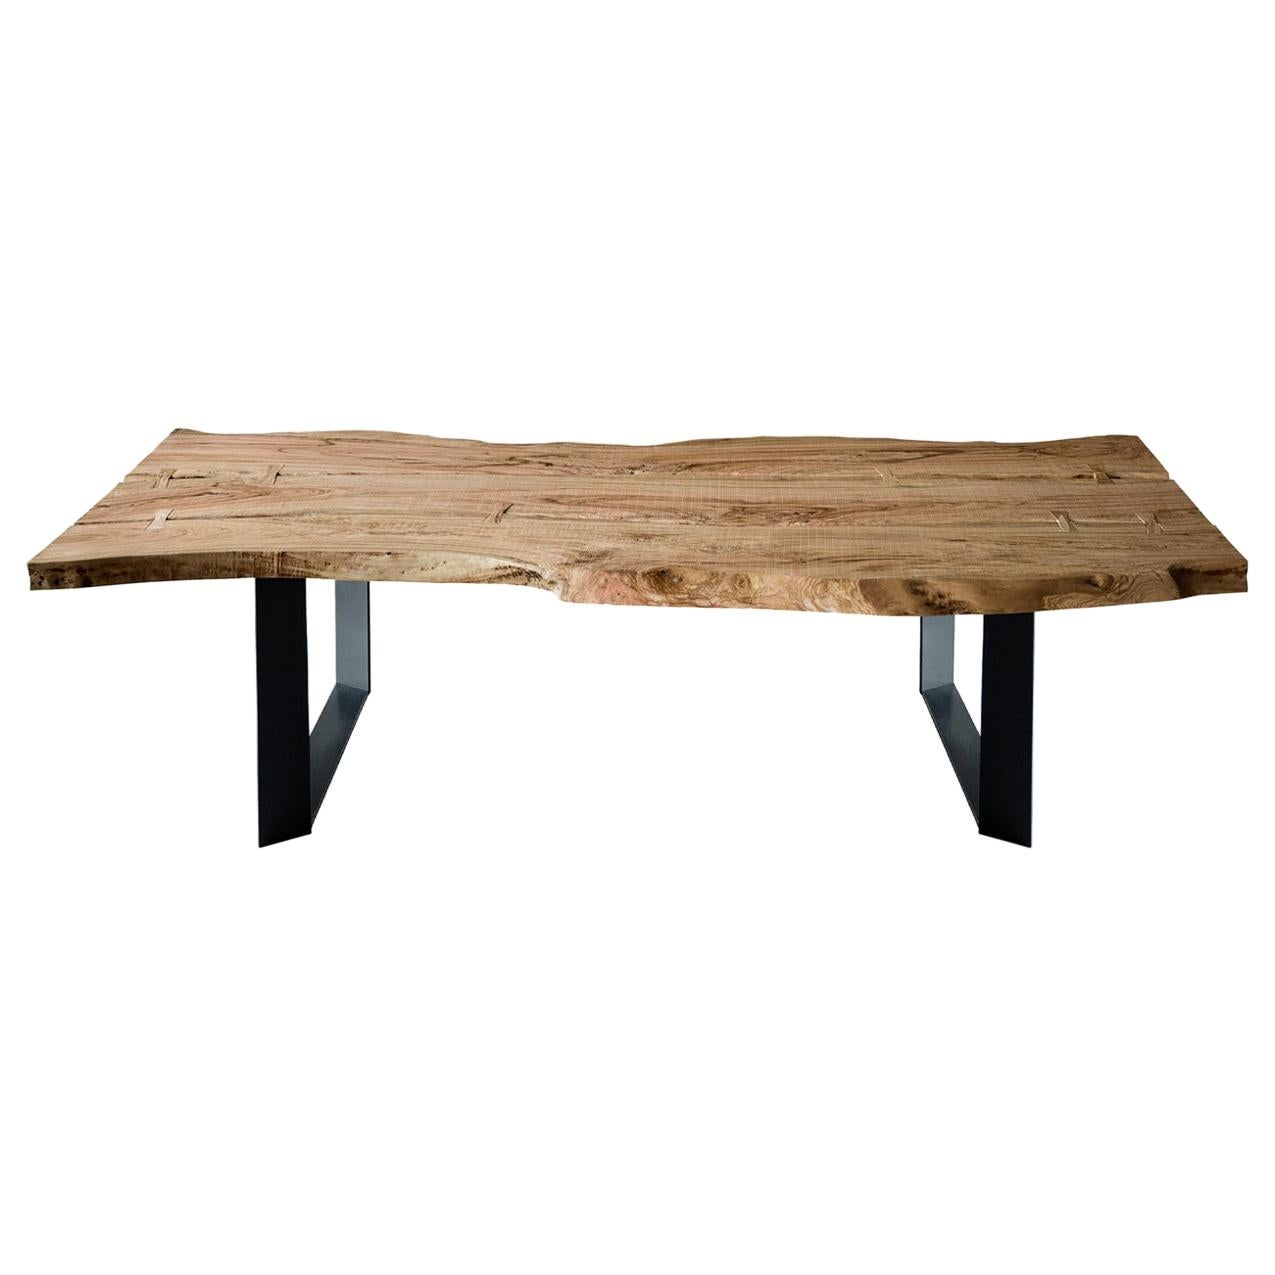 Inulivo Wood 3-Piece Dining Table